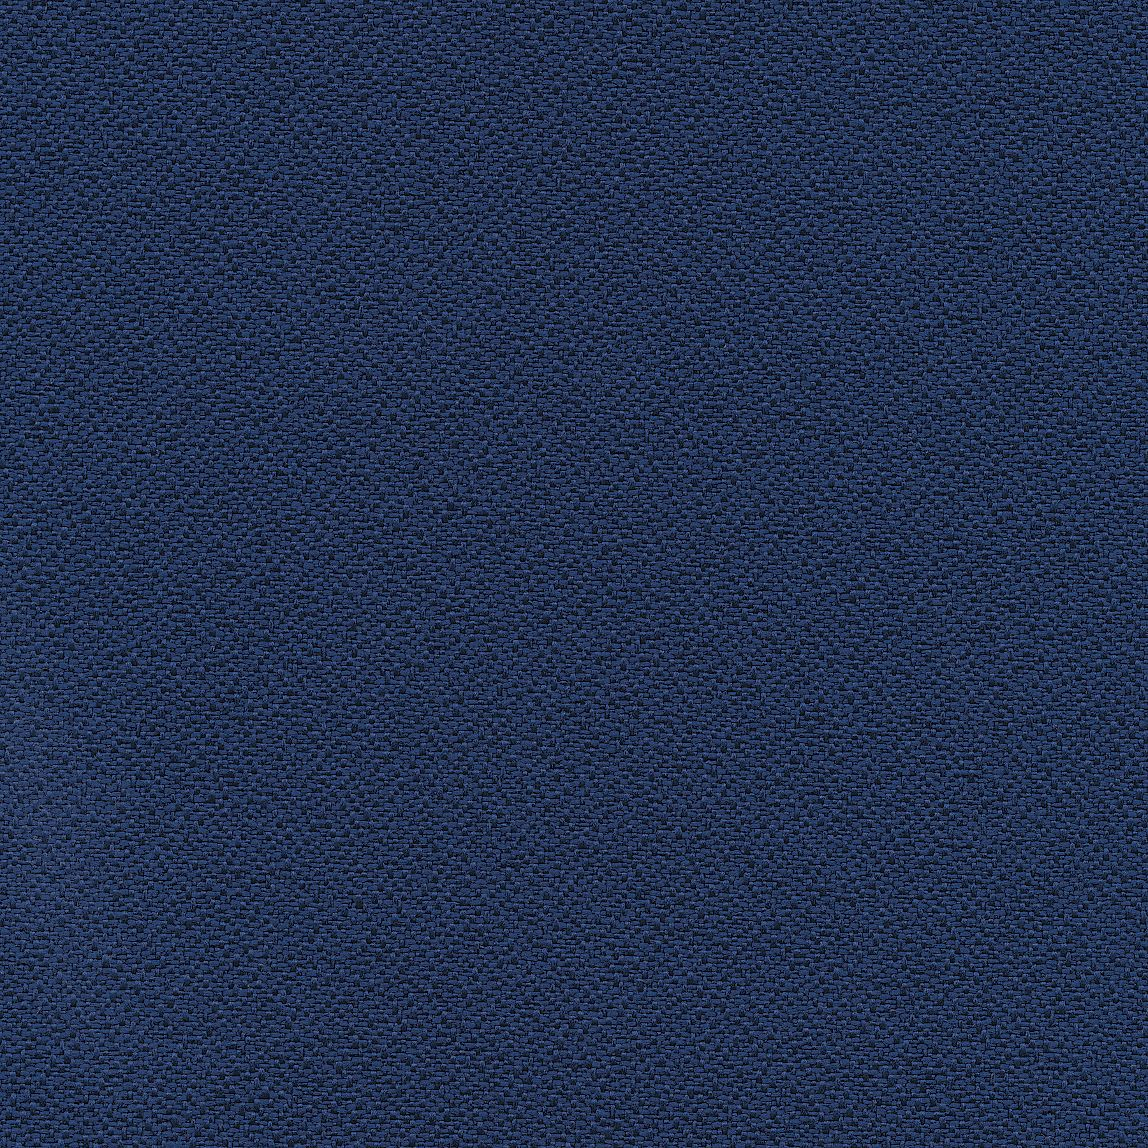 Centurion Panel Indigo Swatch